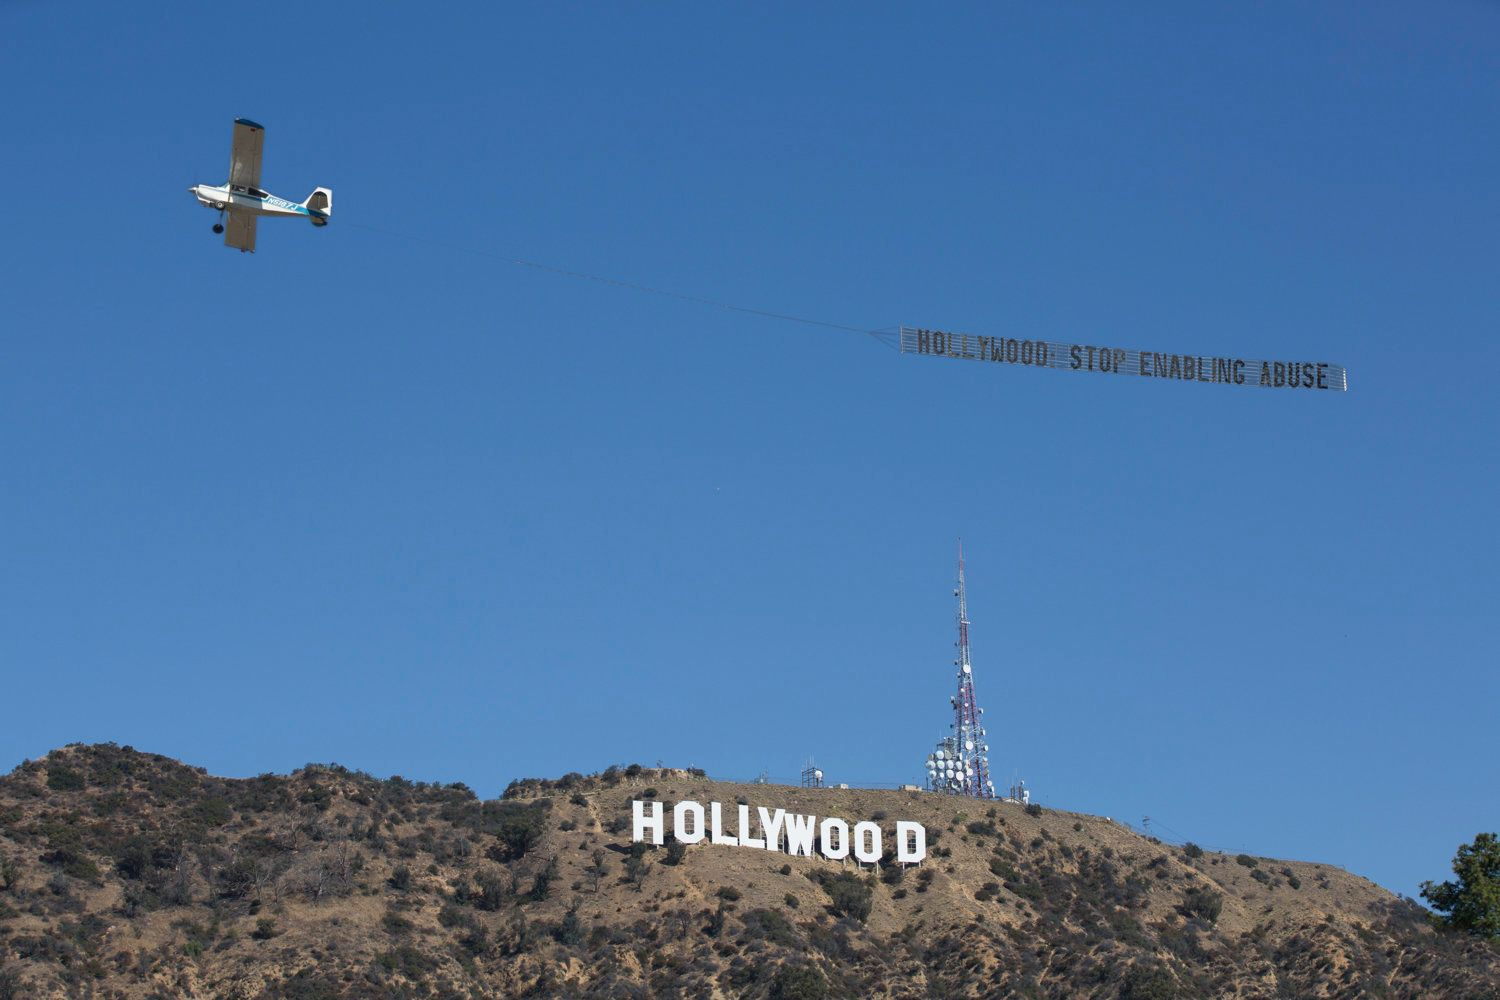 """Hollywood: Stop enabling abuse,"" the sign read."